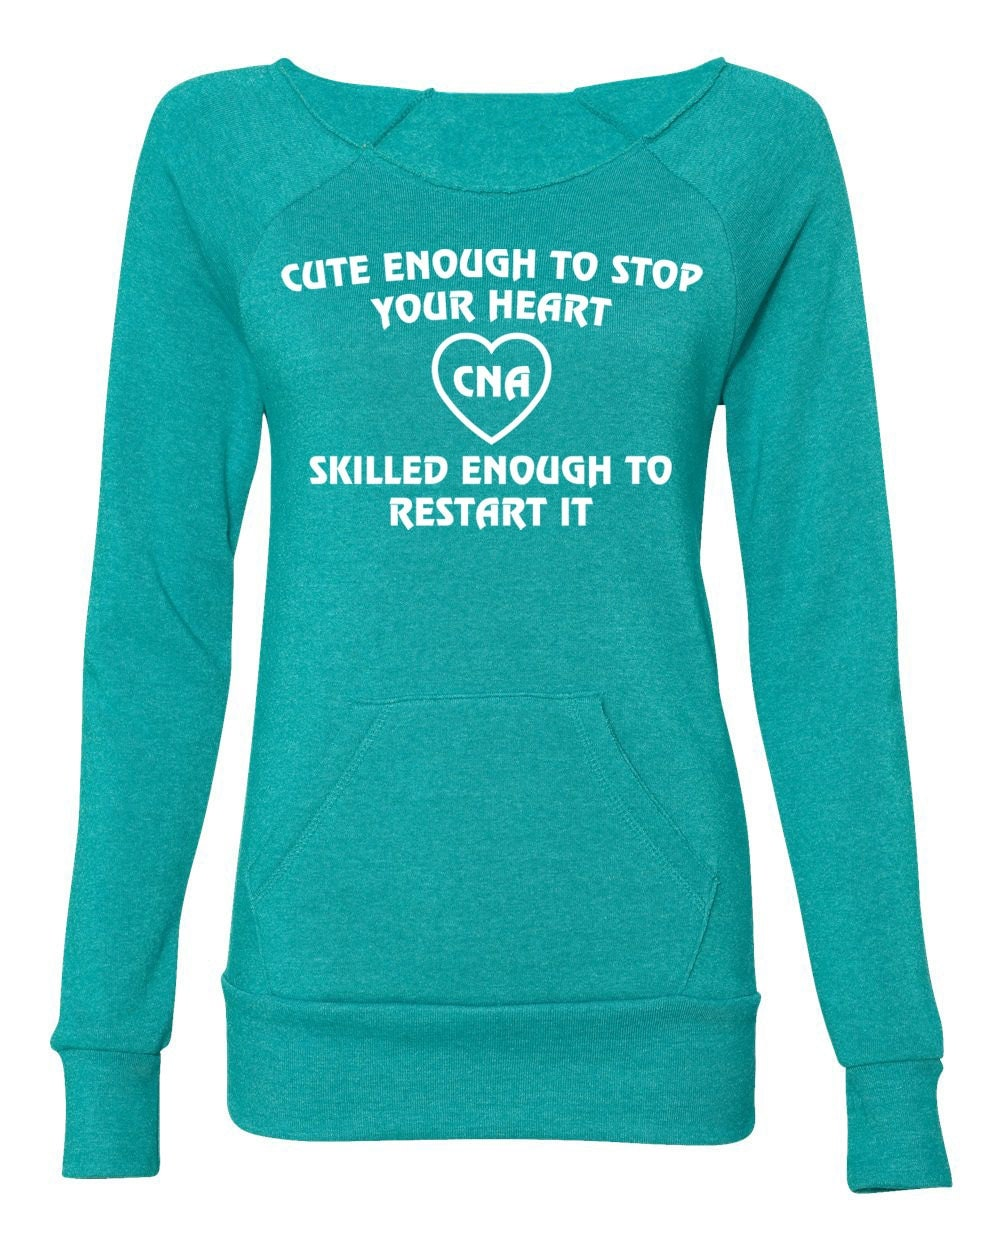 Cute Sweater Quotes: Nurse Sweater. Cute Enough To Stop Your Heart. CNA By